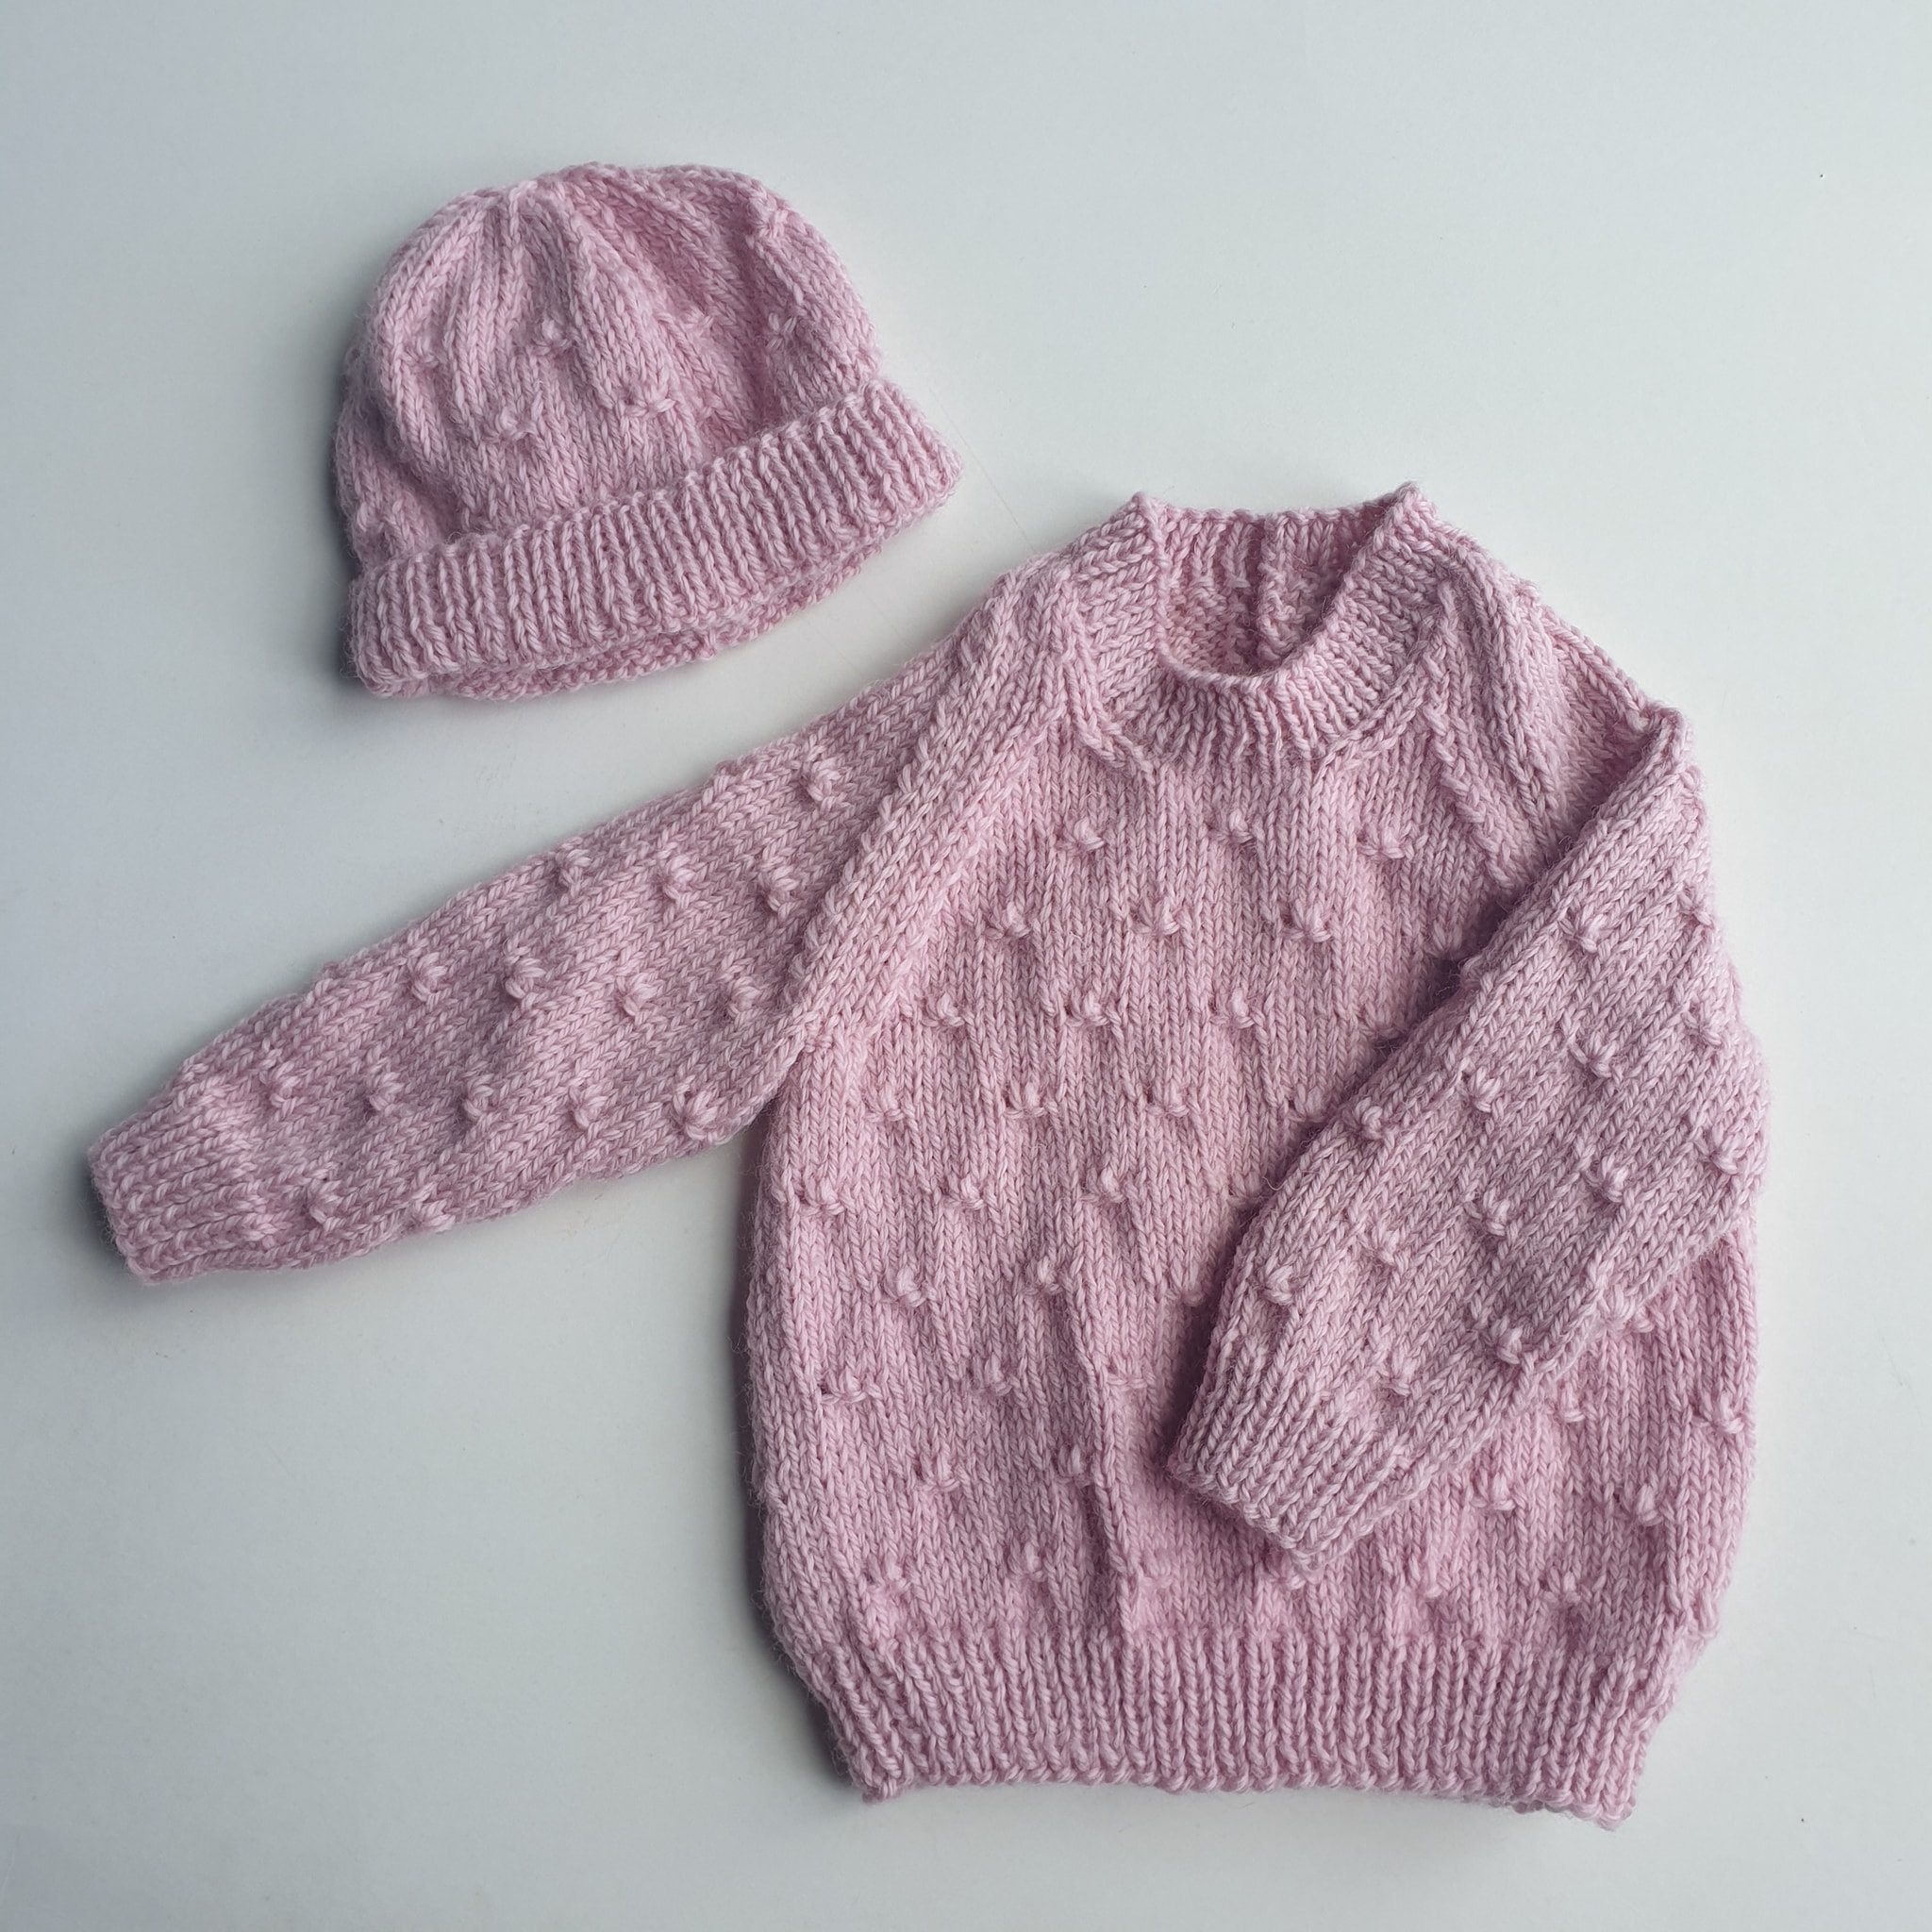 3-6 Months Hand Knitted Pink Jersey and Beanie Set via @chooicenz